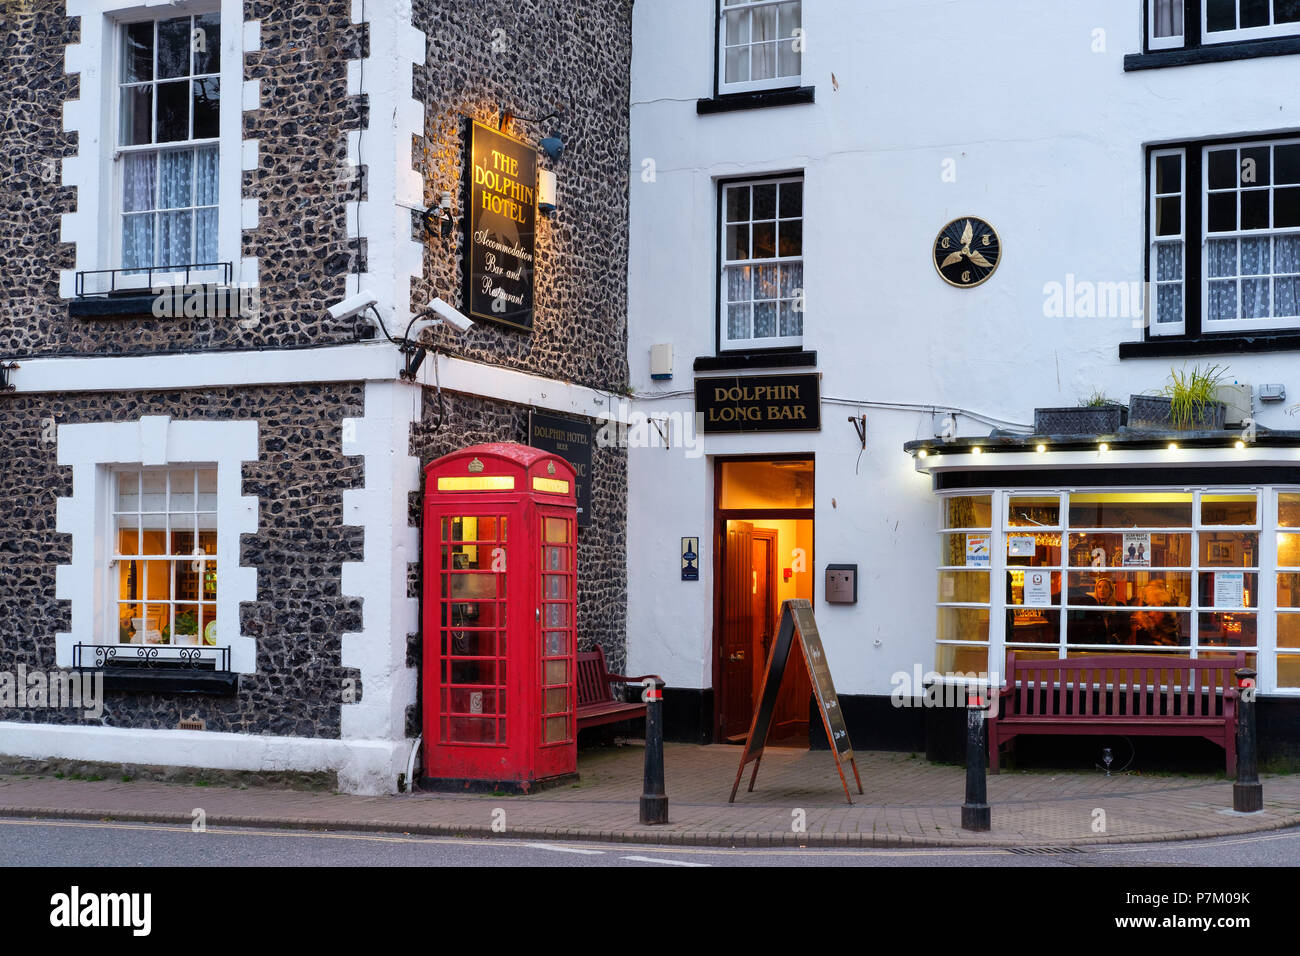 red telephone booth in front of The Dolphin Hotel, Beer, Devon, England, UK - Stock Image